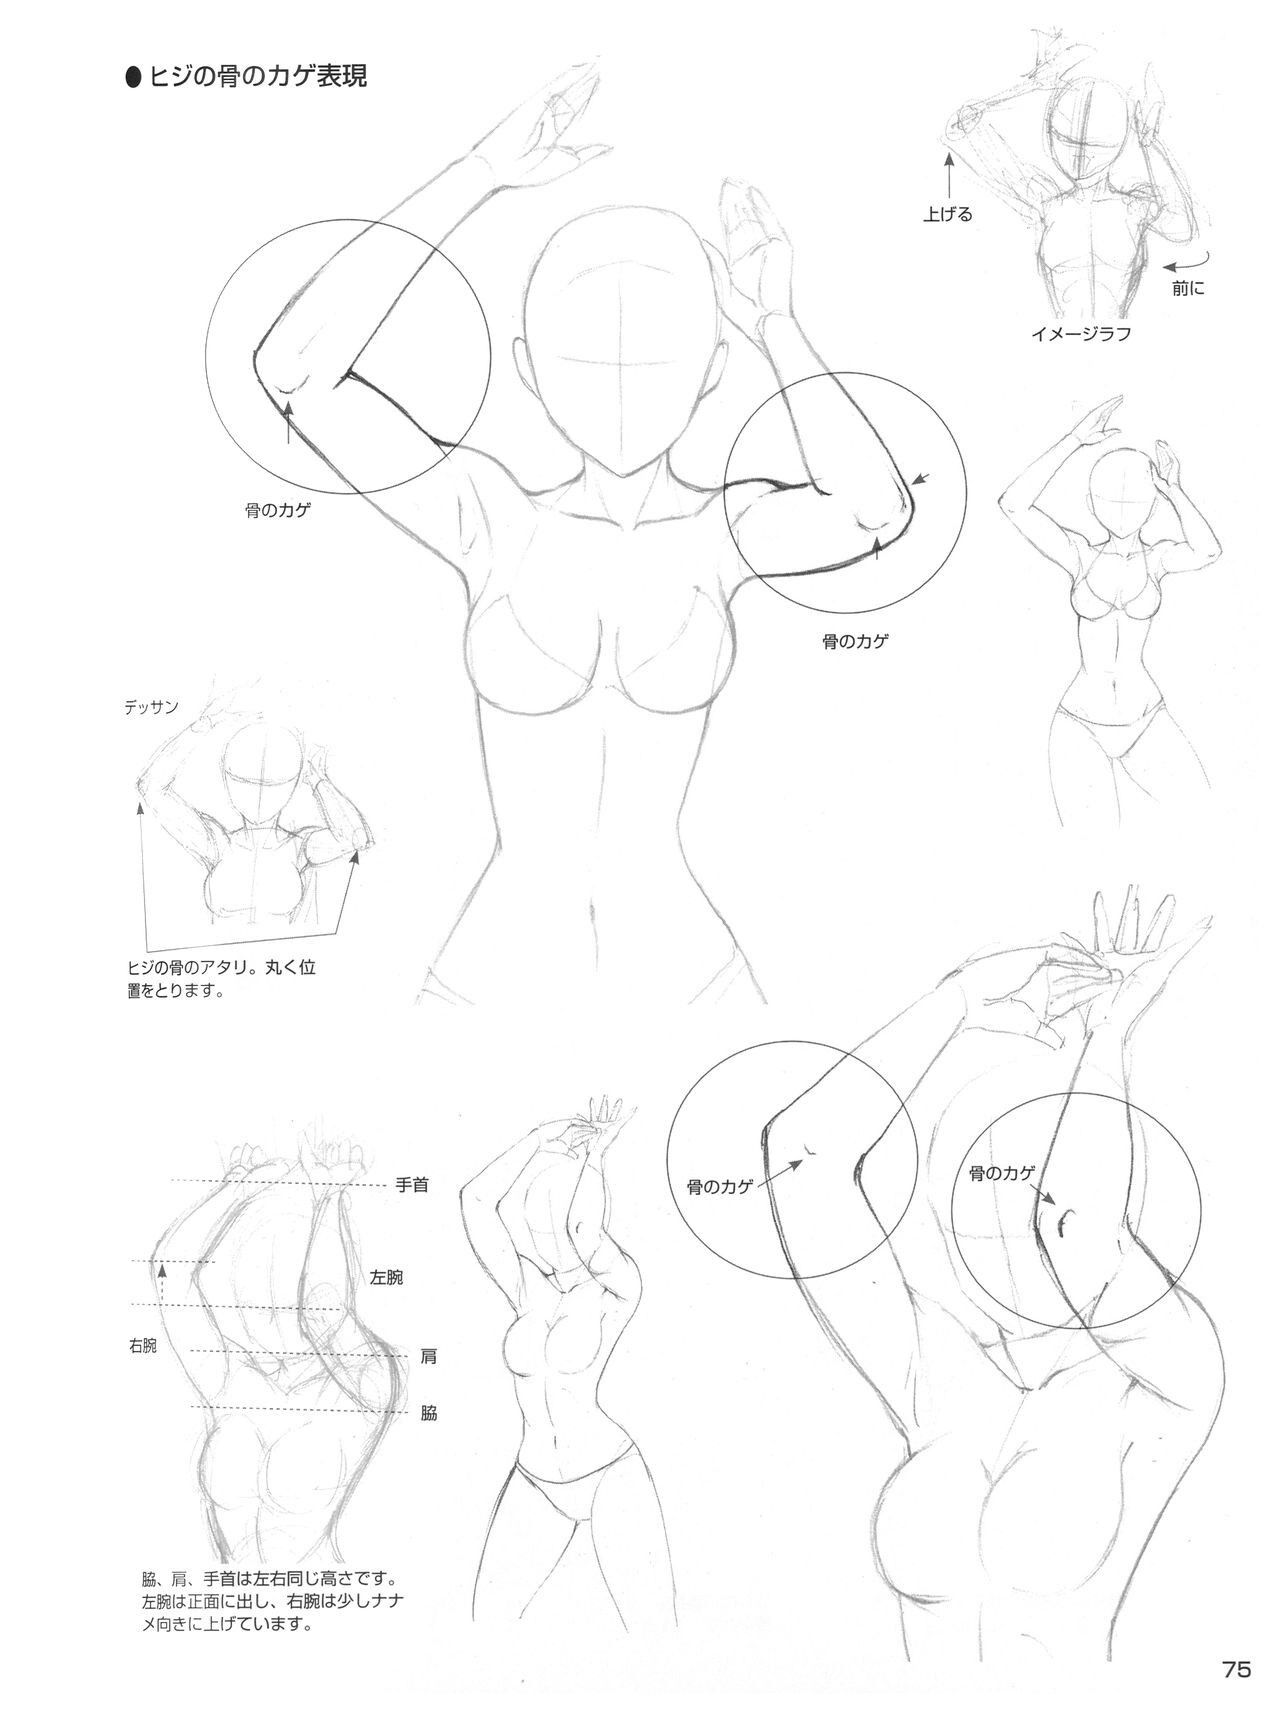 Pin by Ellis Kim on Art Tips | Pinterest | Drawings, Anatomy and ...